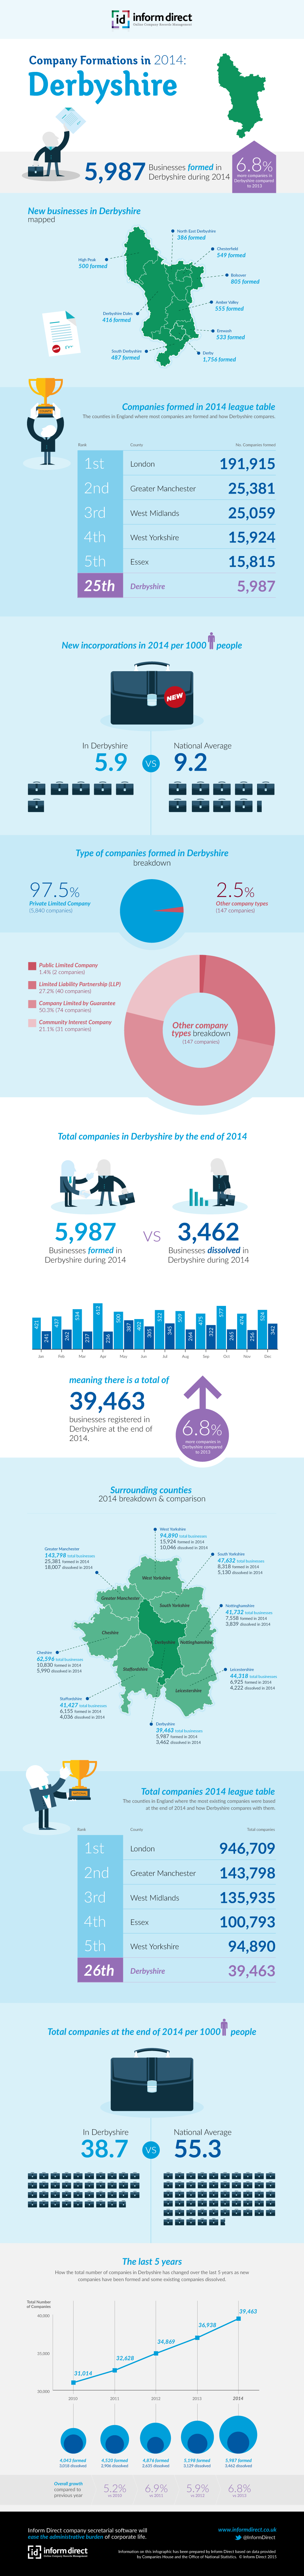 Inform Direct - Company Formations in Derbyshire 2014 Infographic